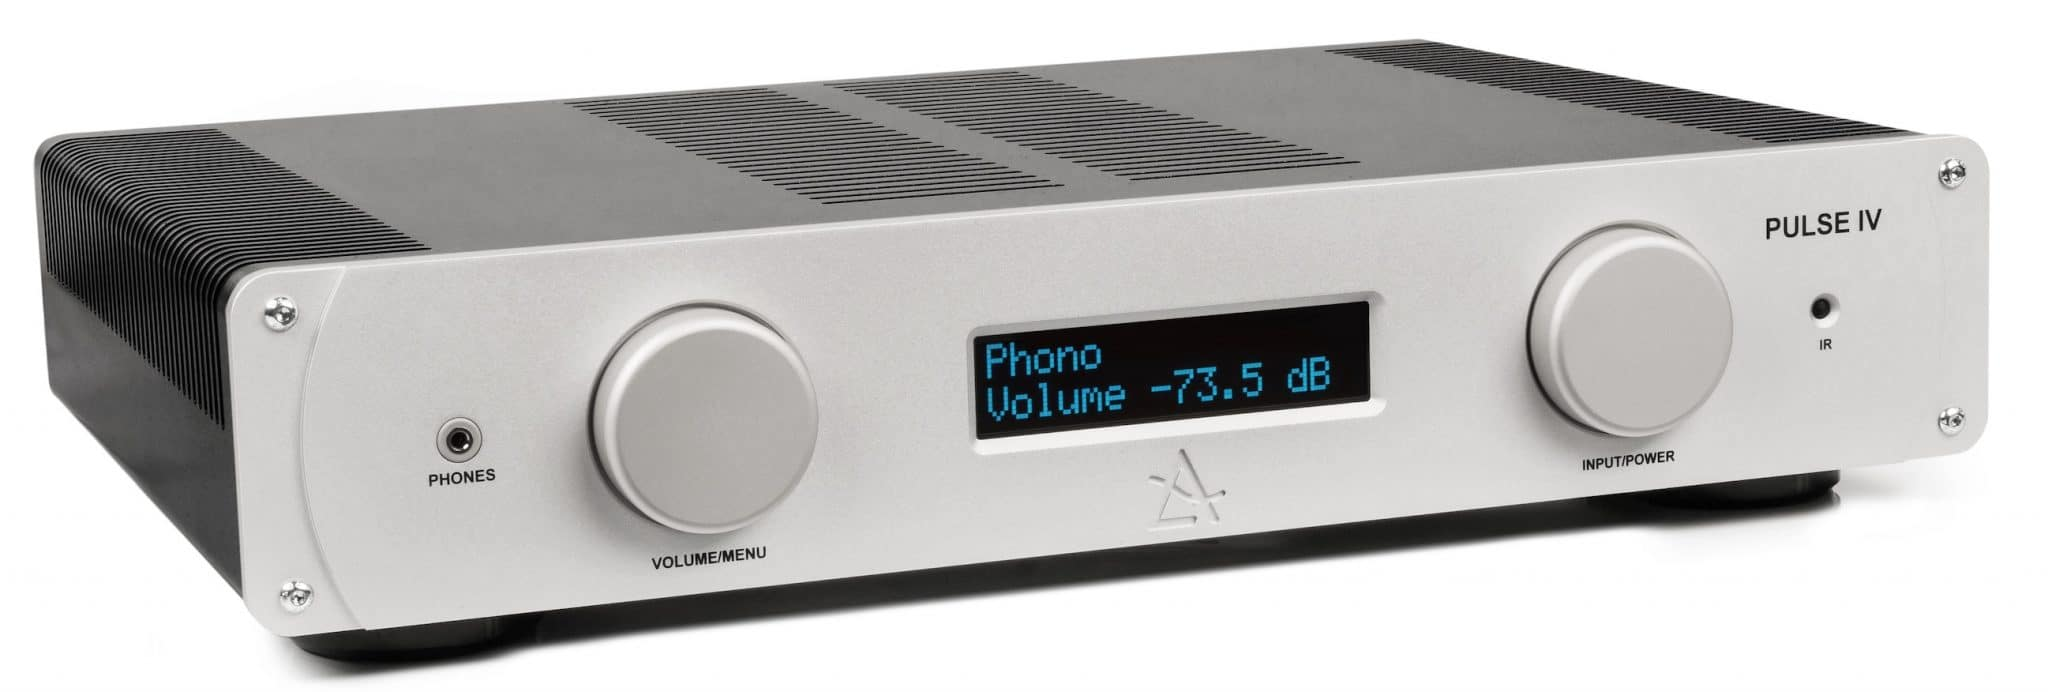 Pulse IV All-in-One From Leema